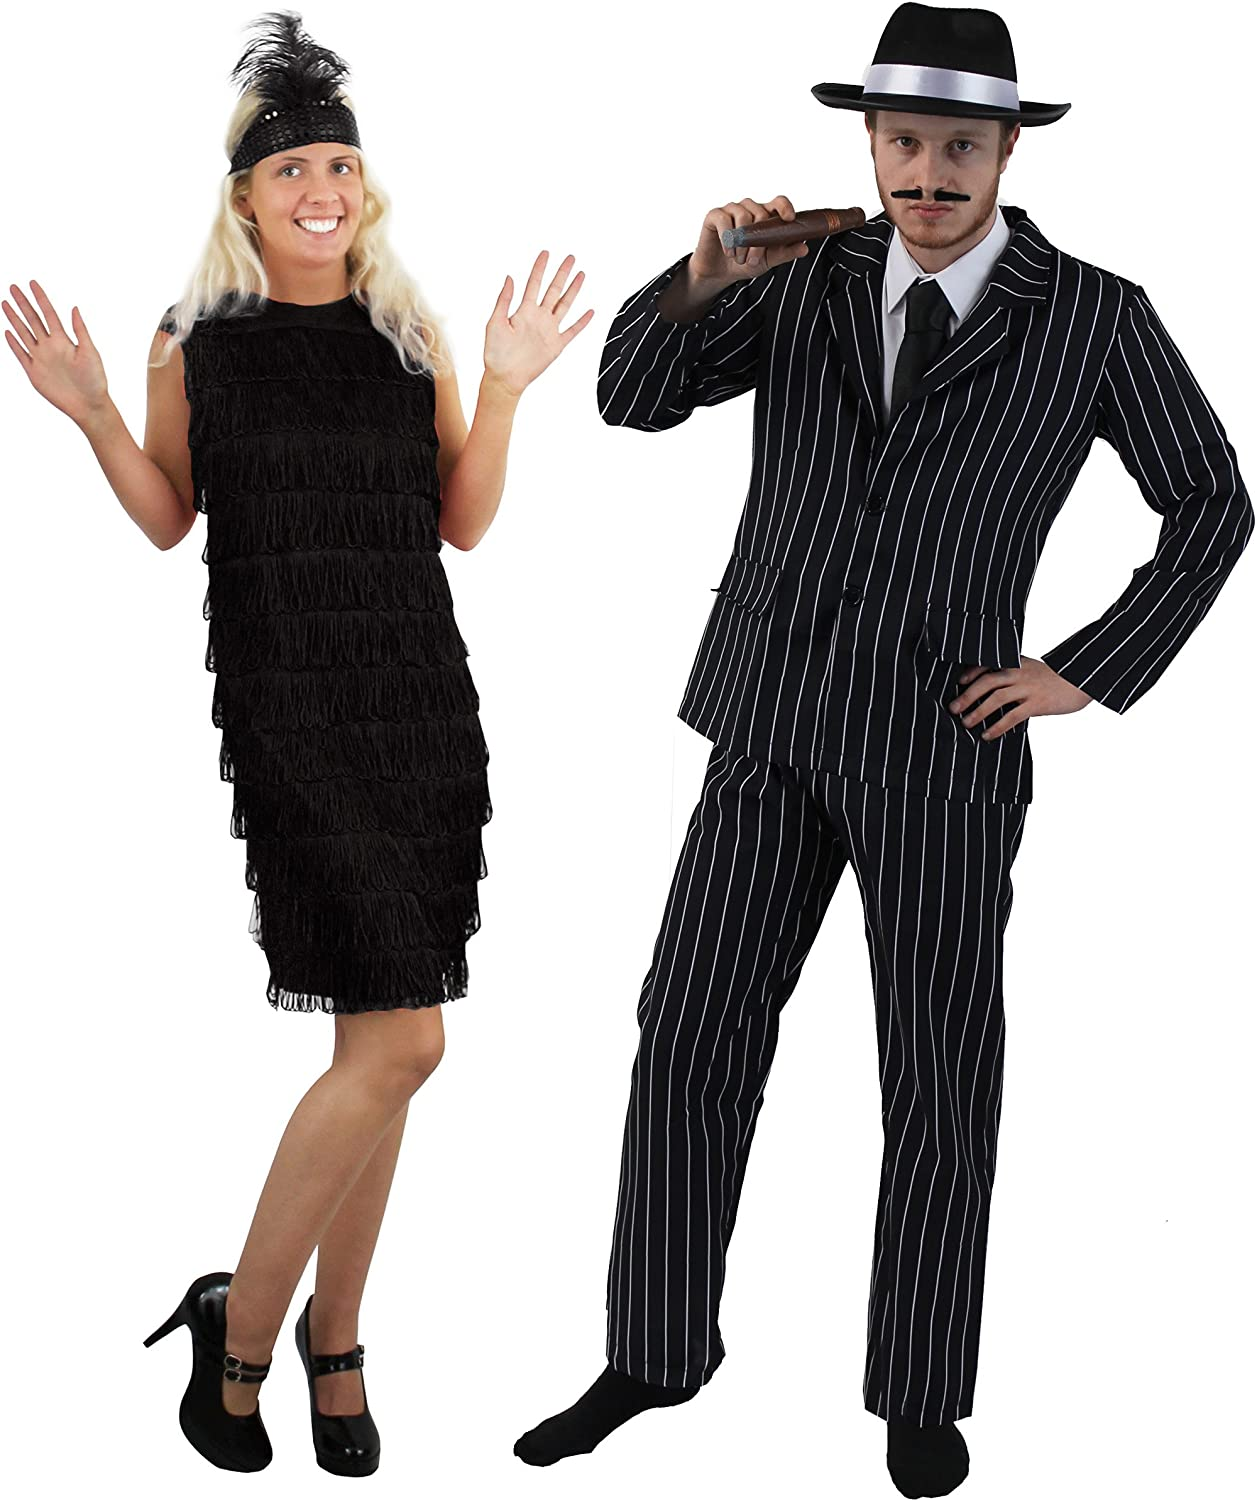 1920s Gangster and Flapper Girl Costumes for Couple